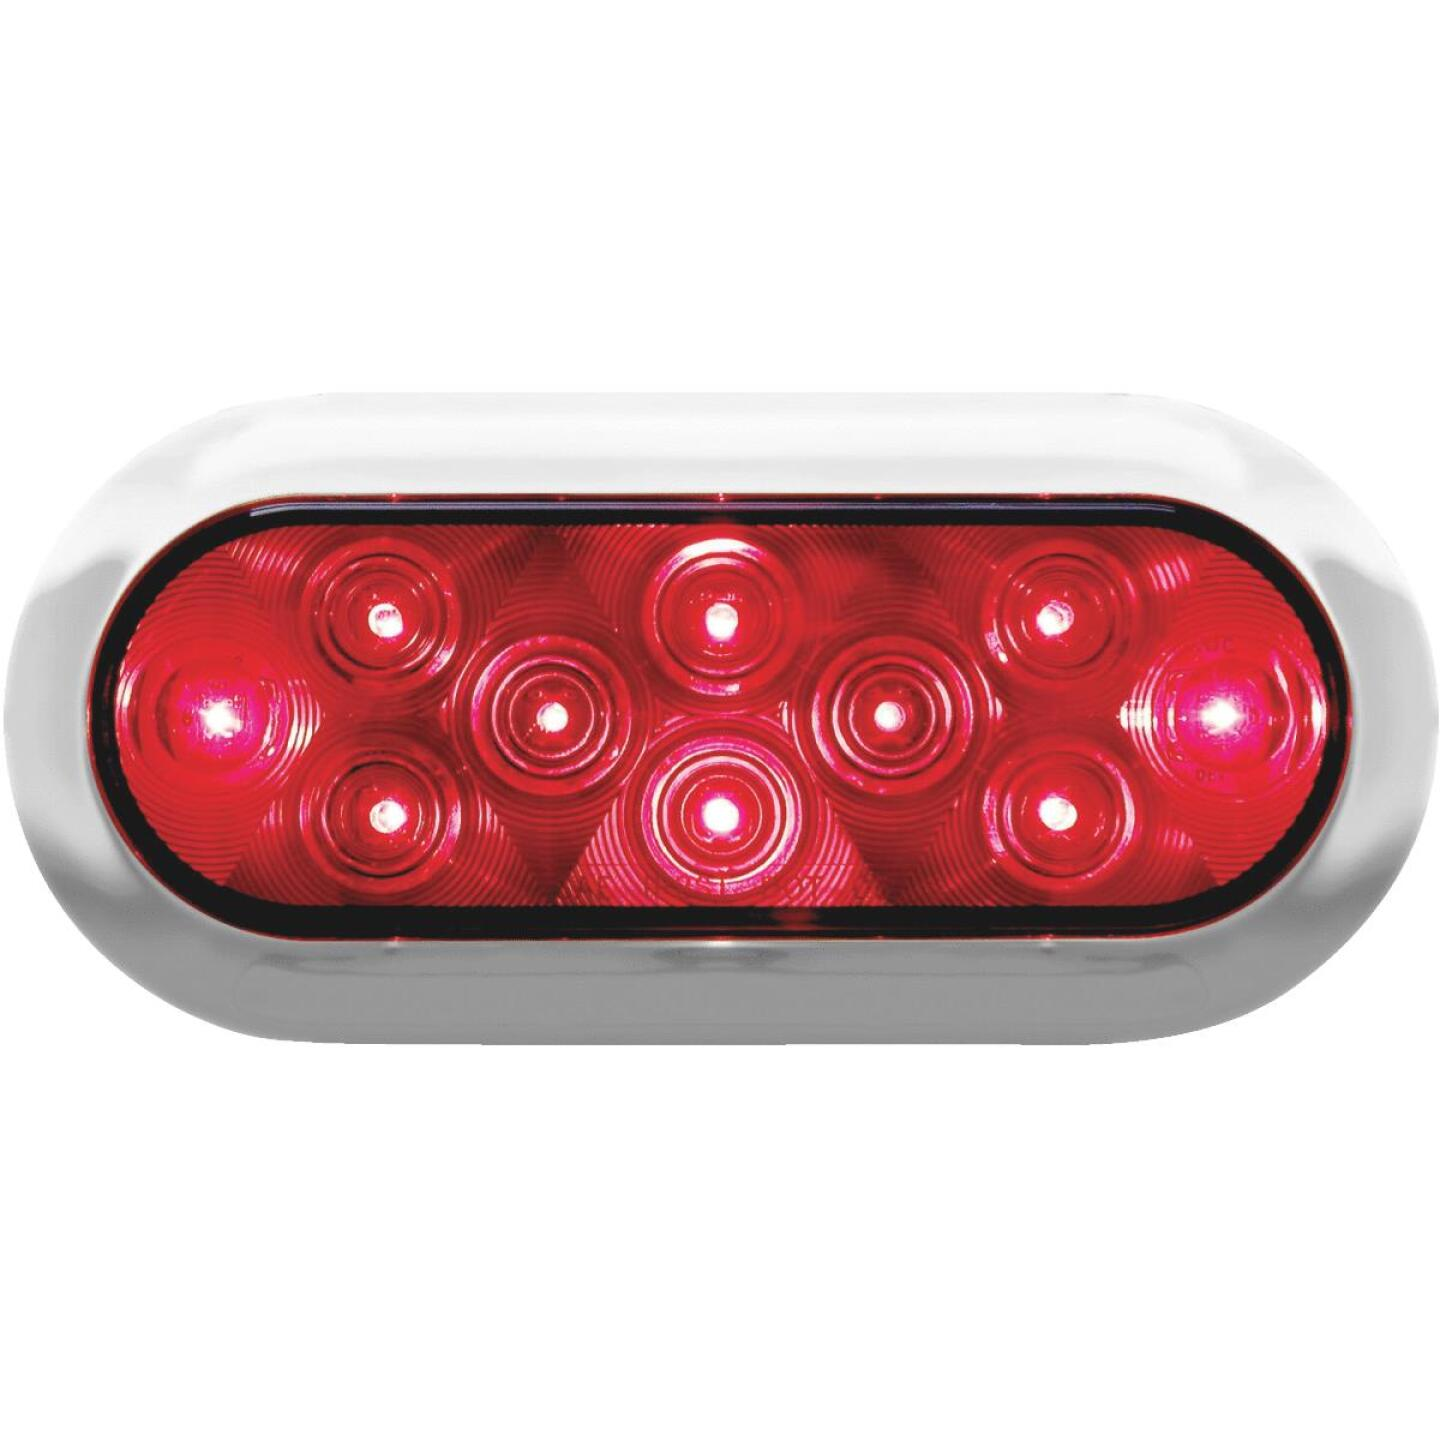 Peterson Square 9-32 V. Red Stop & Tail Light Image 1